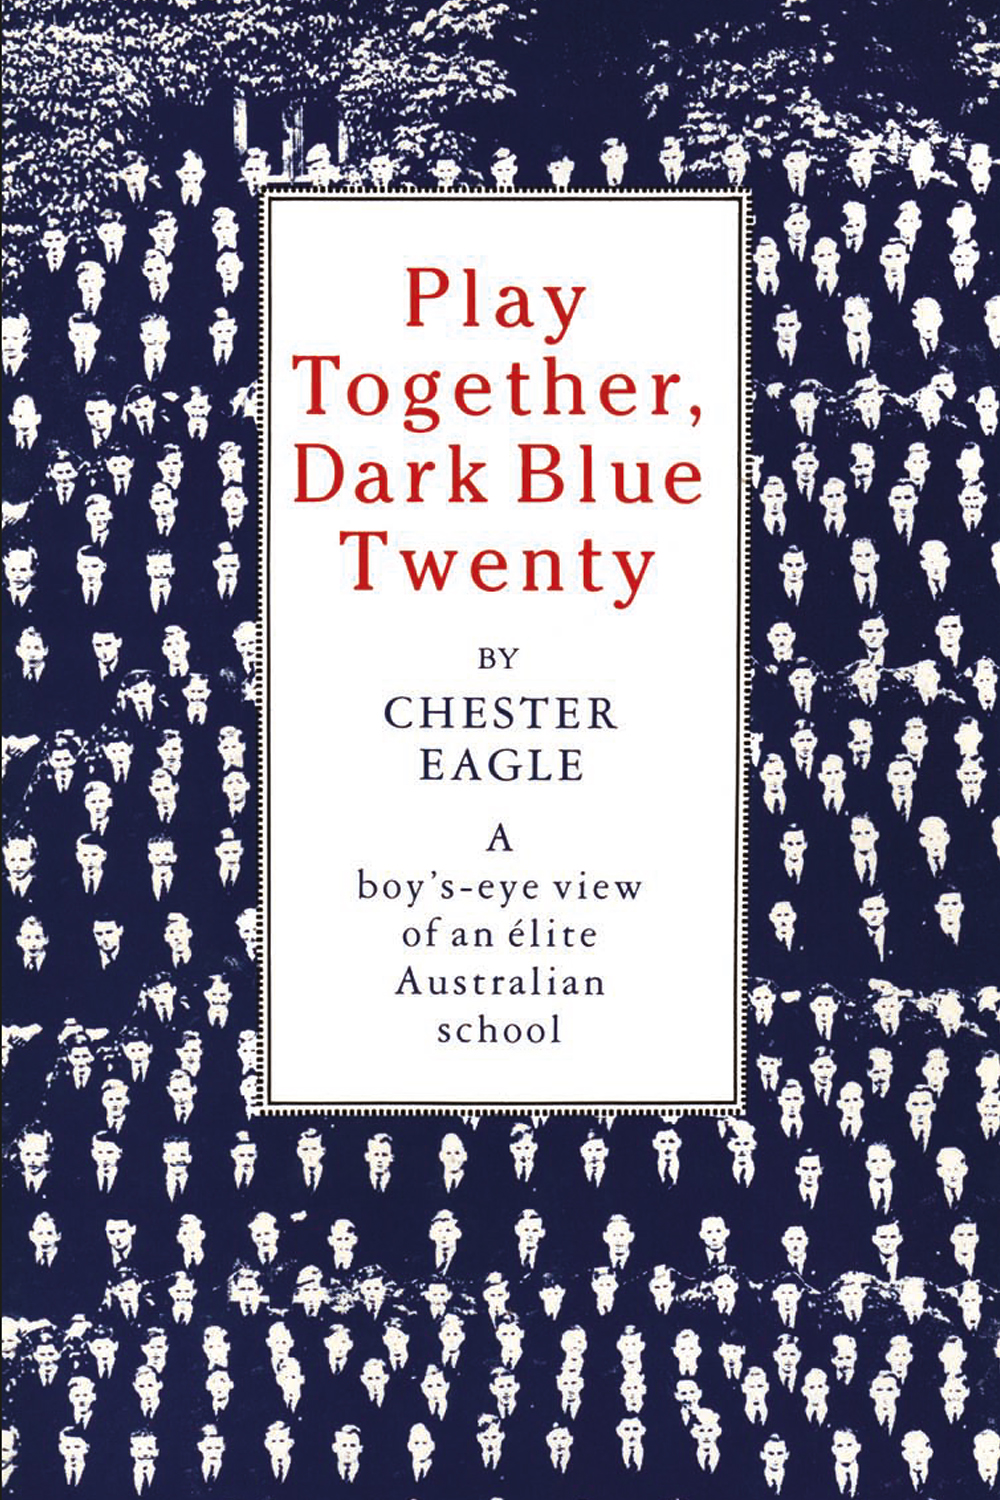 Play-Together-Dark-Blue-Twenty-cover-03